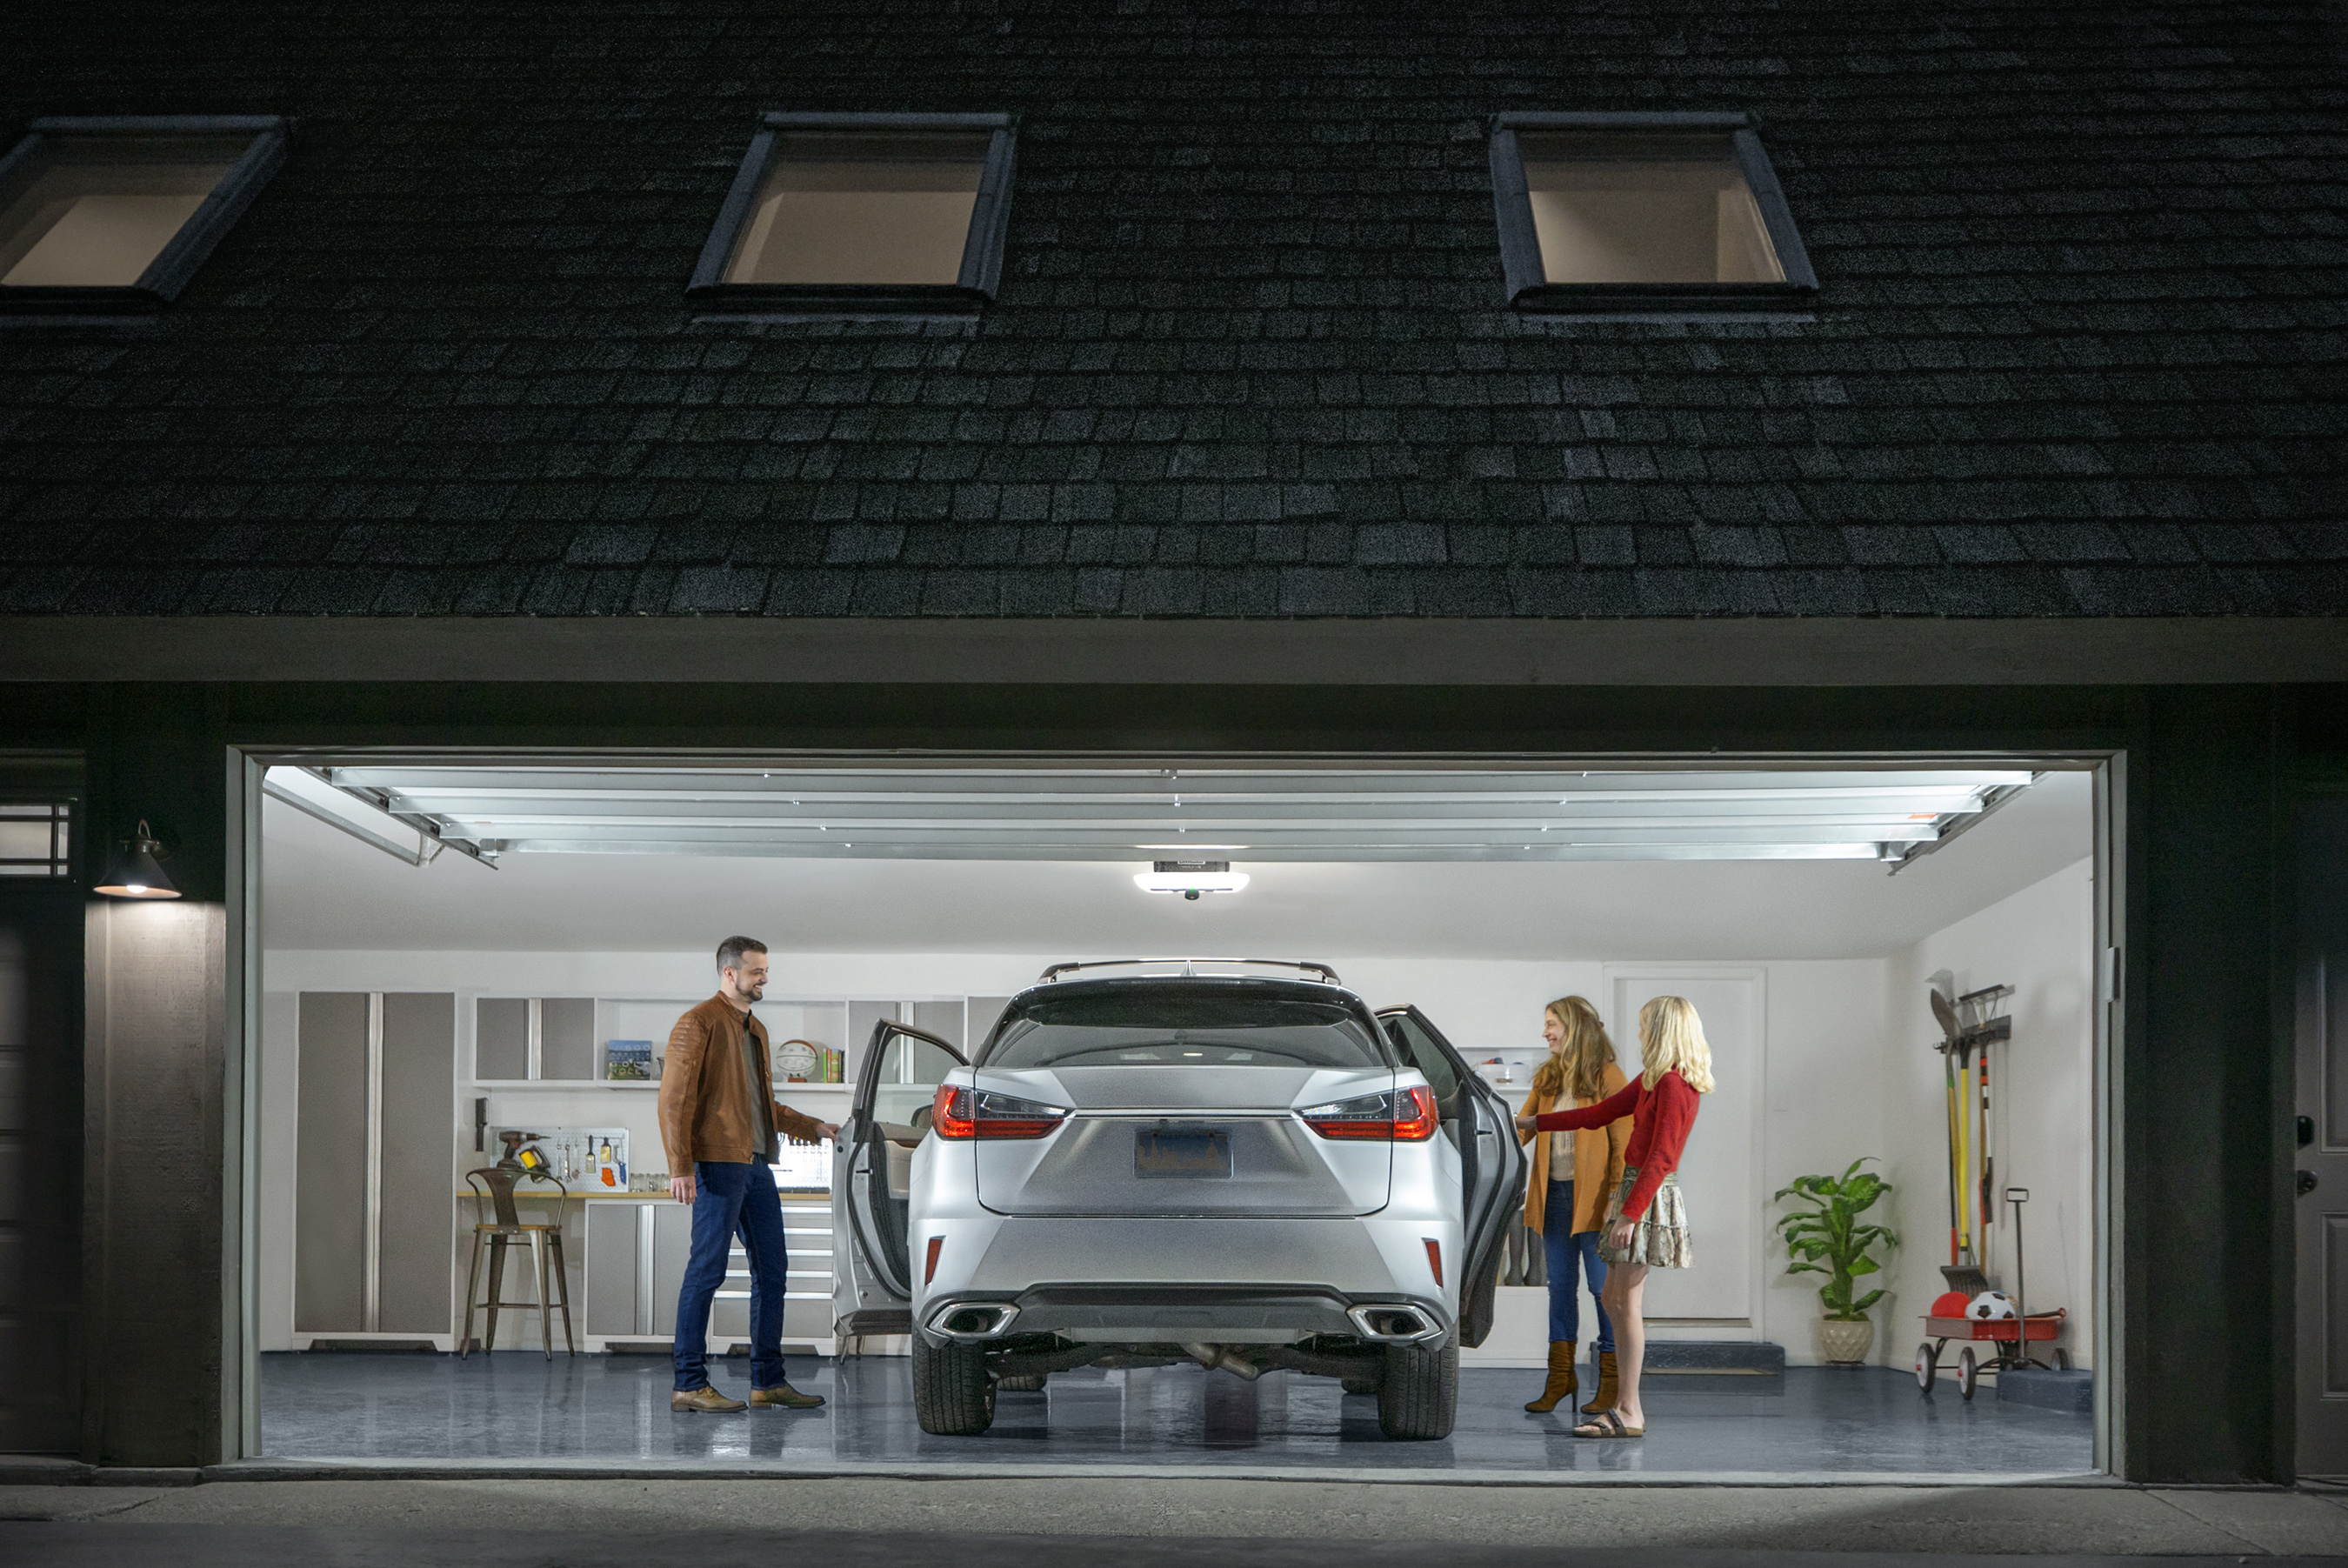 Get the latest in garage opener innovation with LiftMaster - built-in camera, LED Corner to Corner Lighting™ system, battery backup and myQ technology.